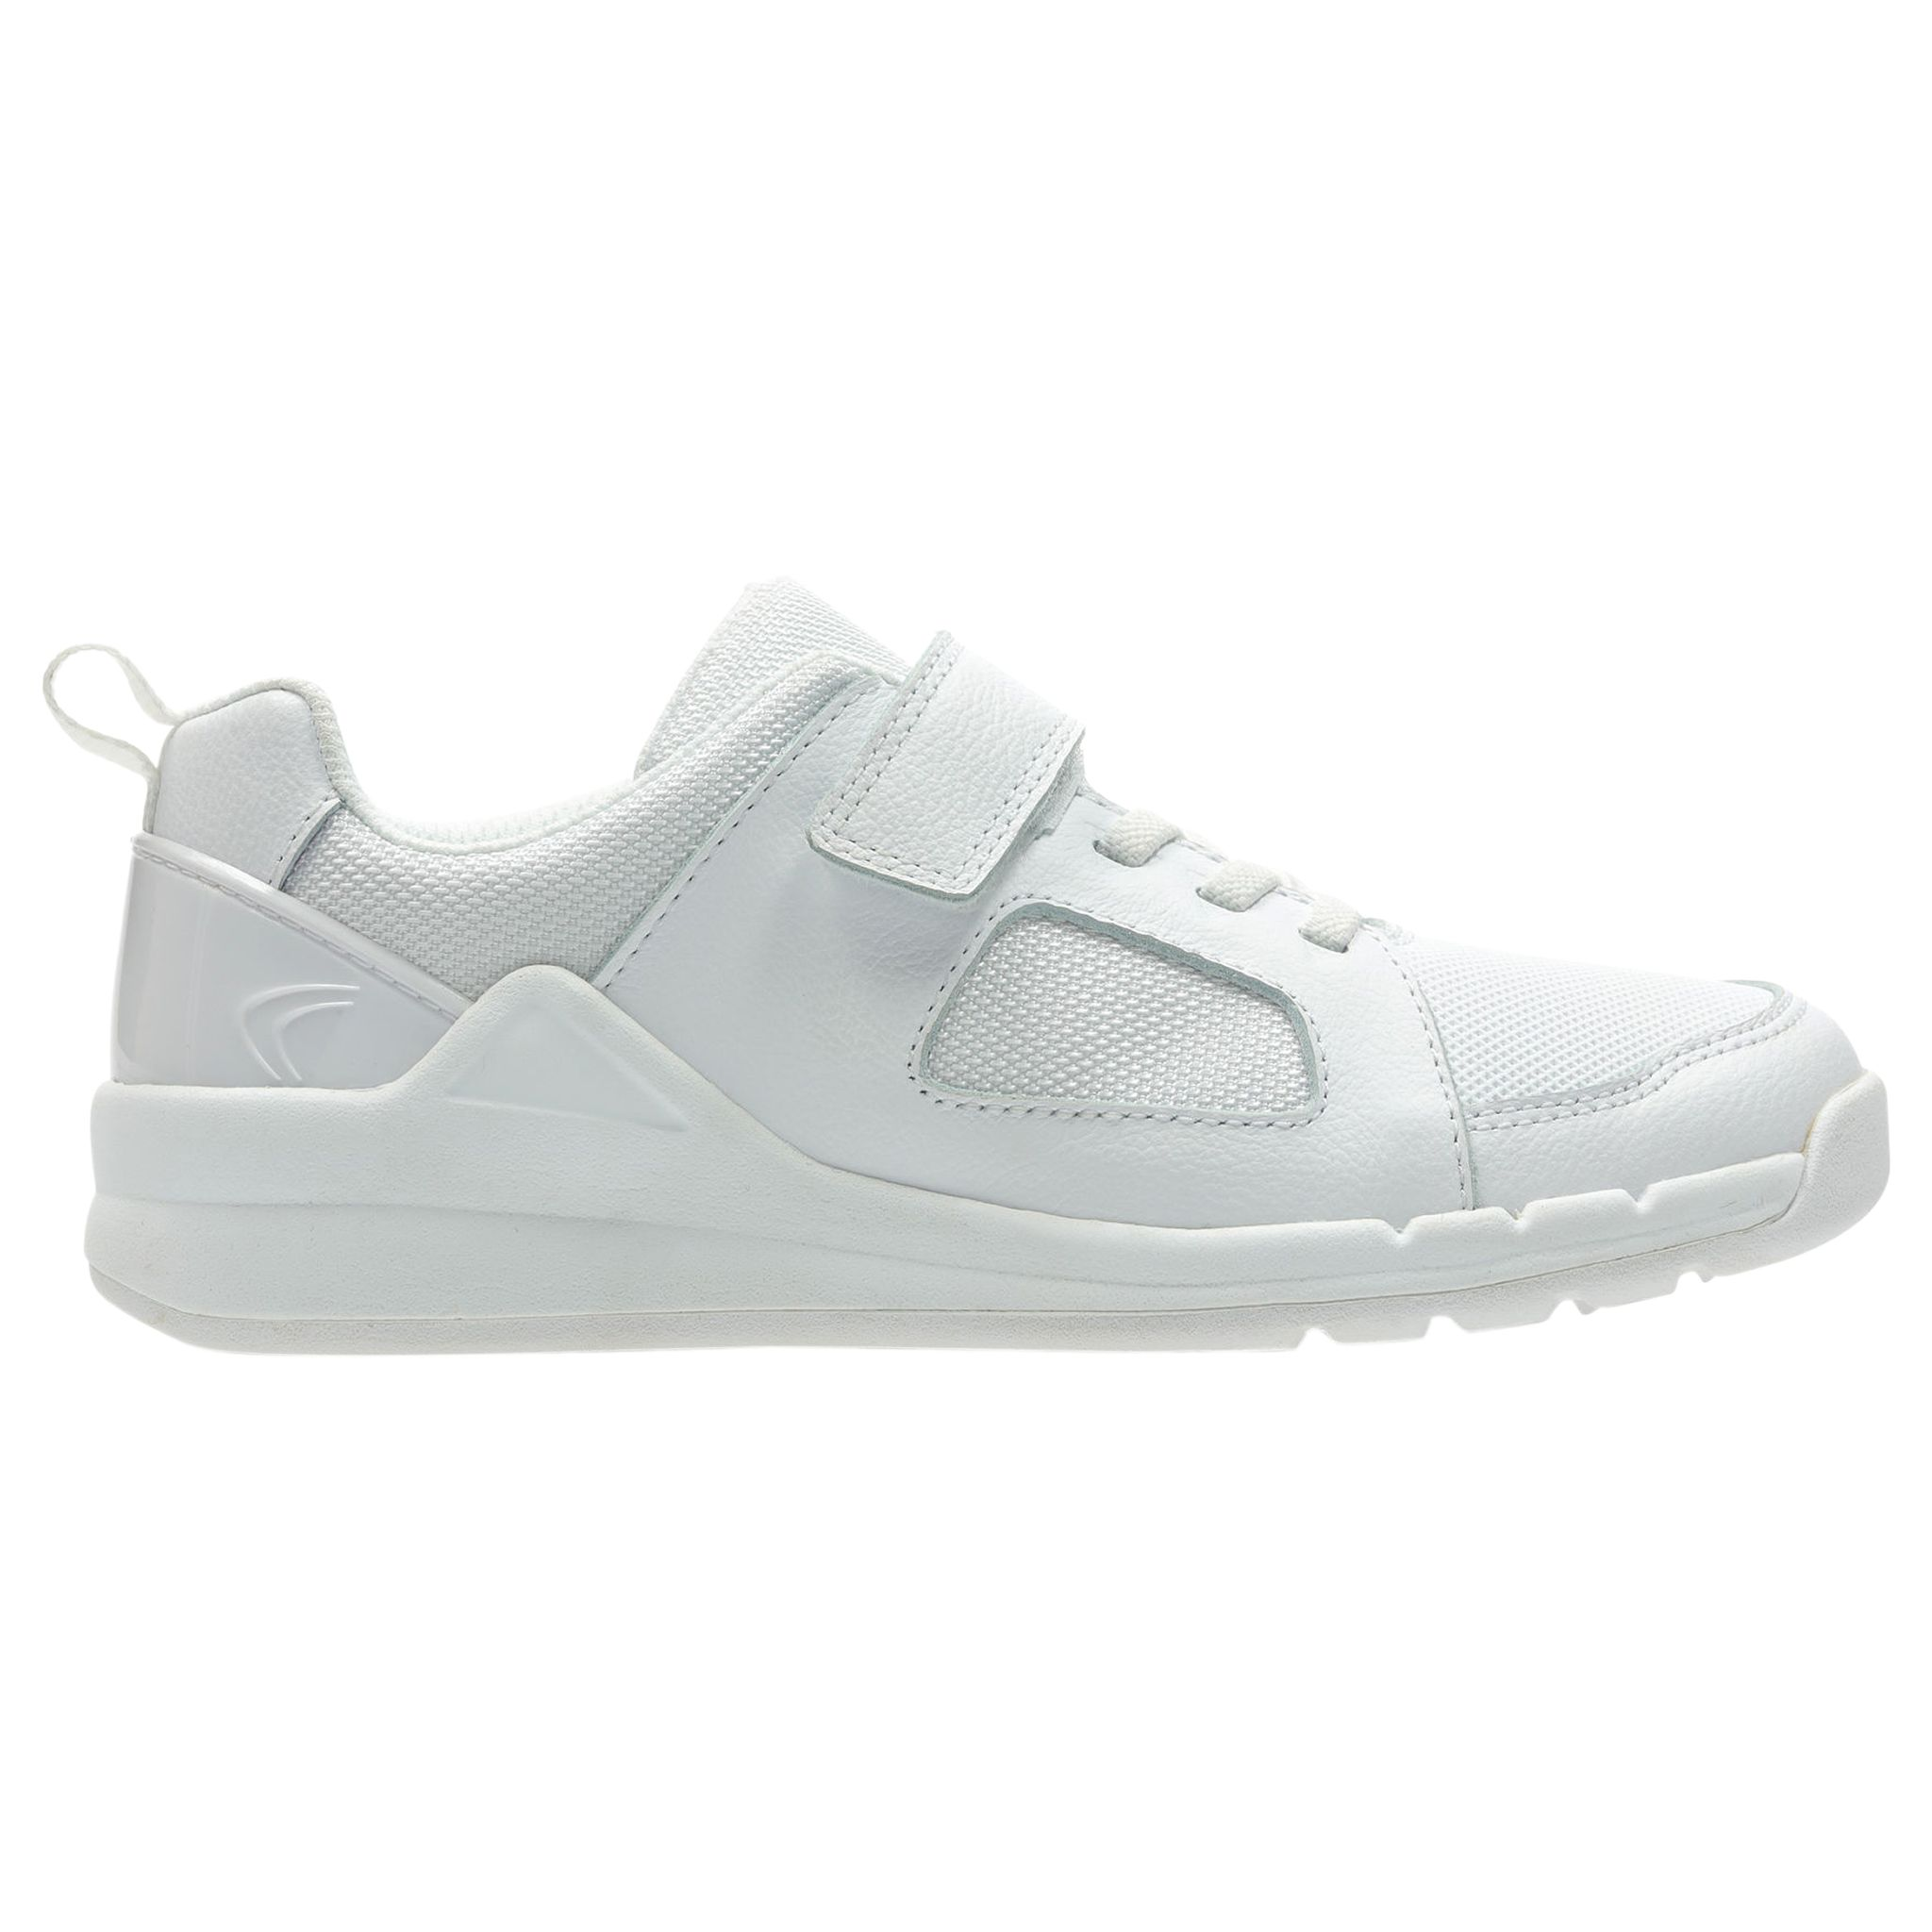 Clarks Orbit Ride Kids White Leather Infant Sports Trainers